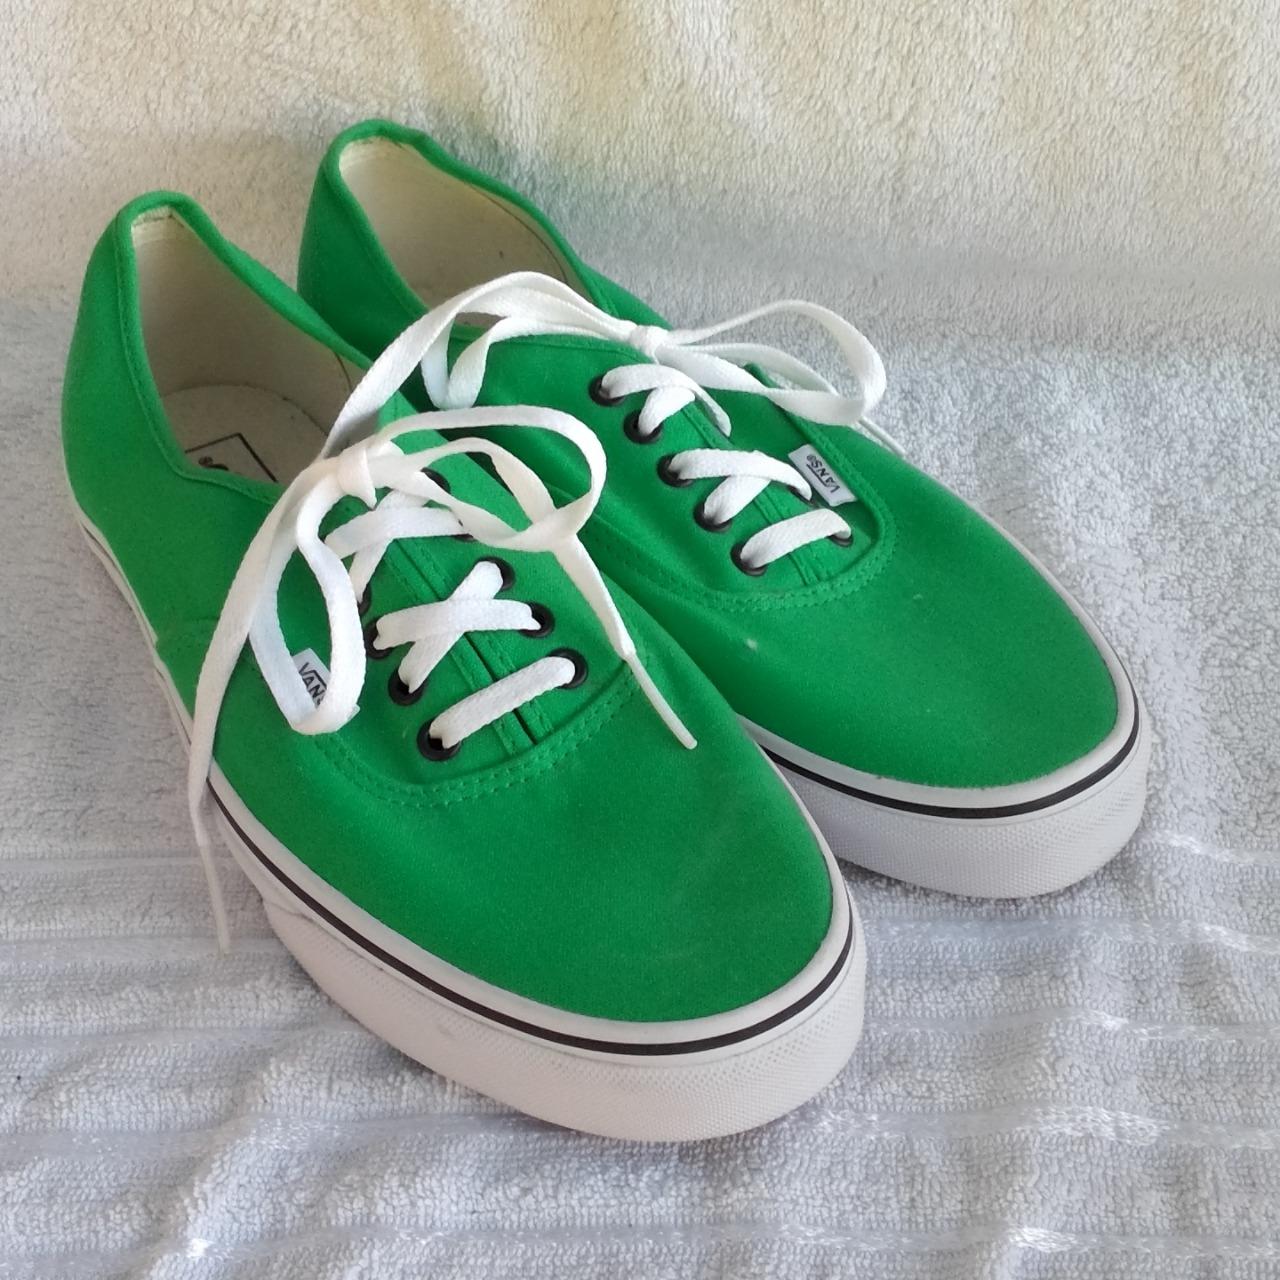 NEW WITHOUT TAGS VANS  Mens  Size 11 White/Green lace up